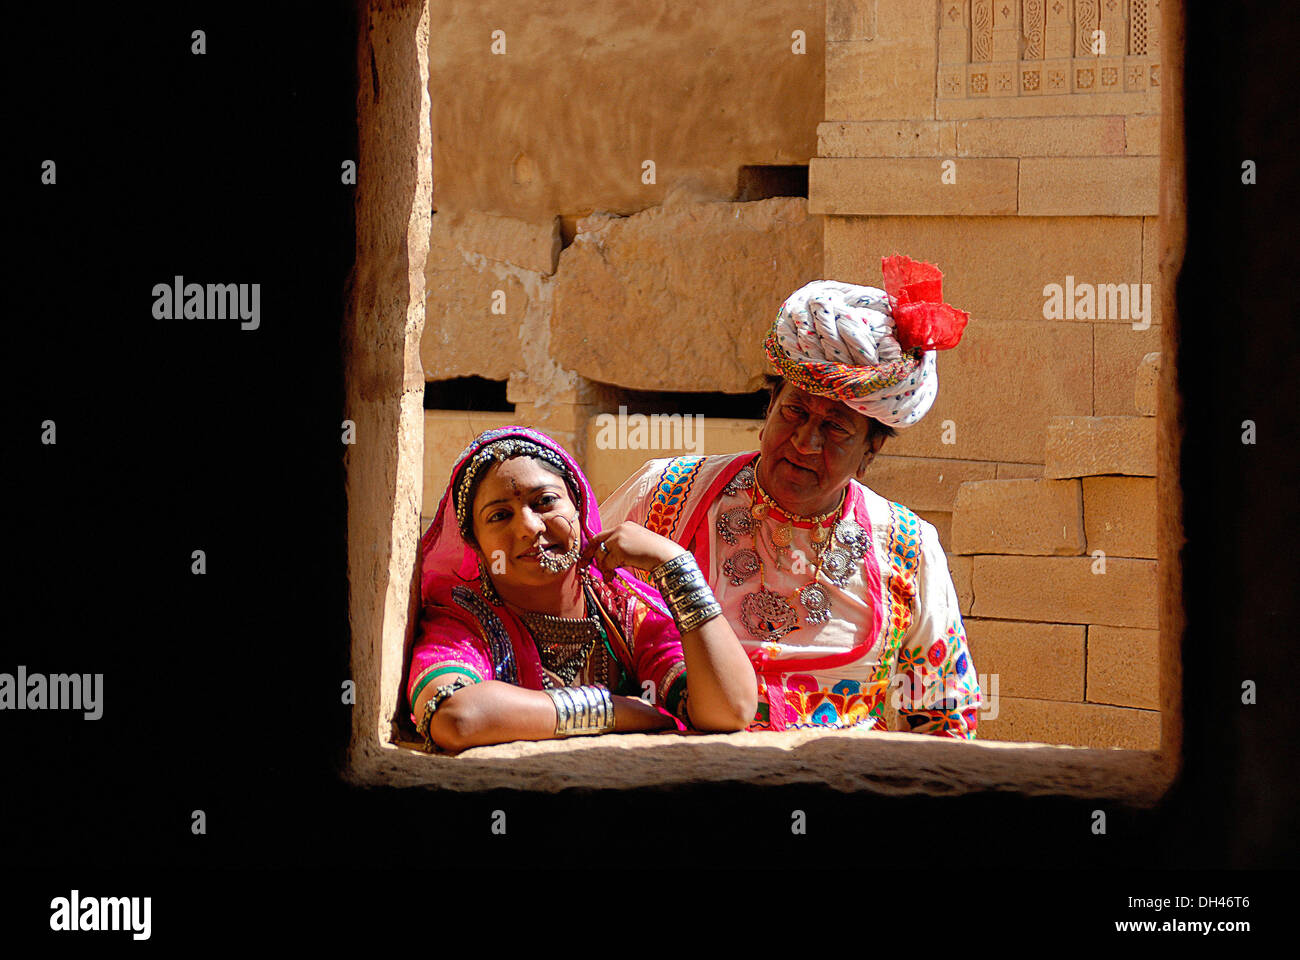 Indian man and woman in traditional dress Jaisalmer Rajasthan India Asia   MR#784B&784C Stock Photo